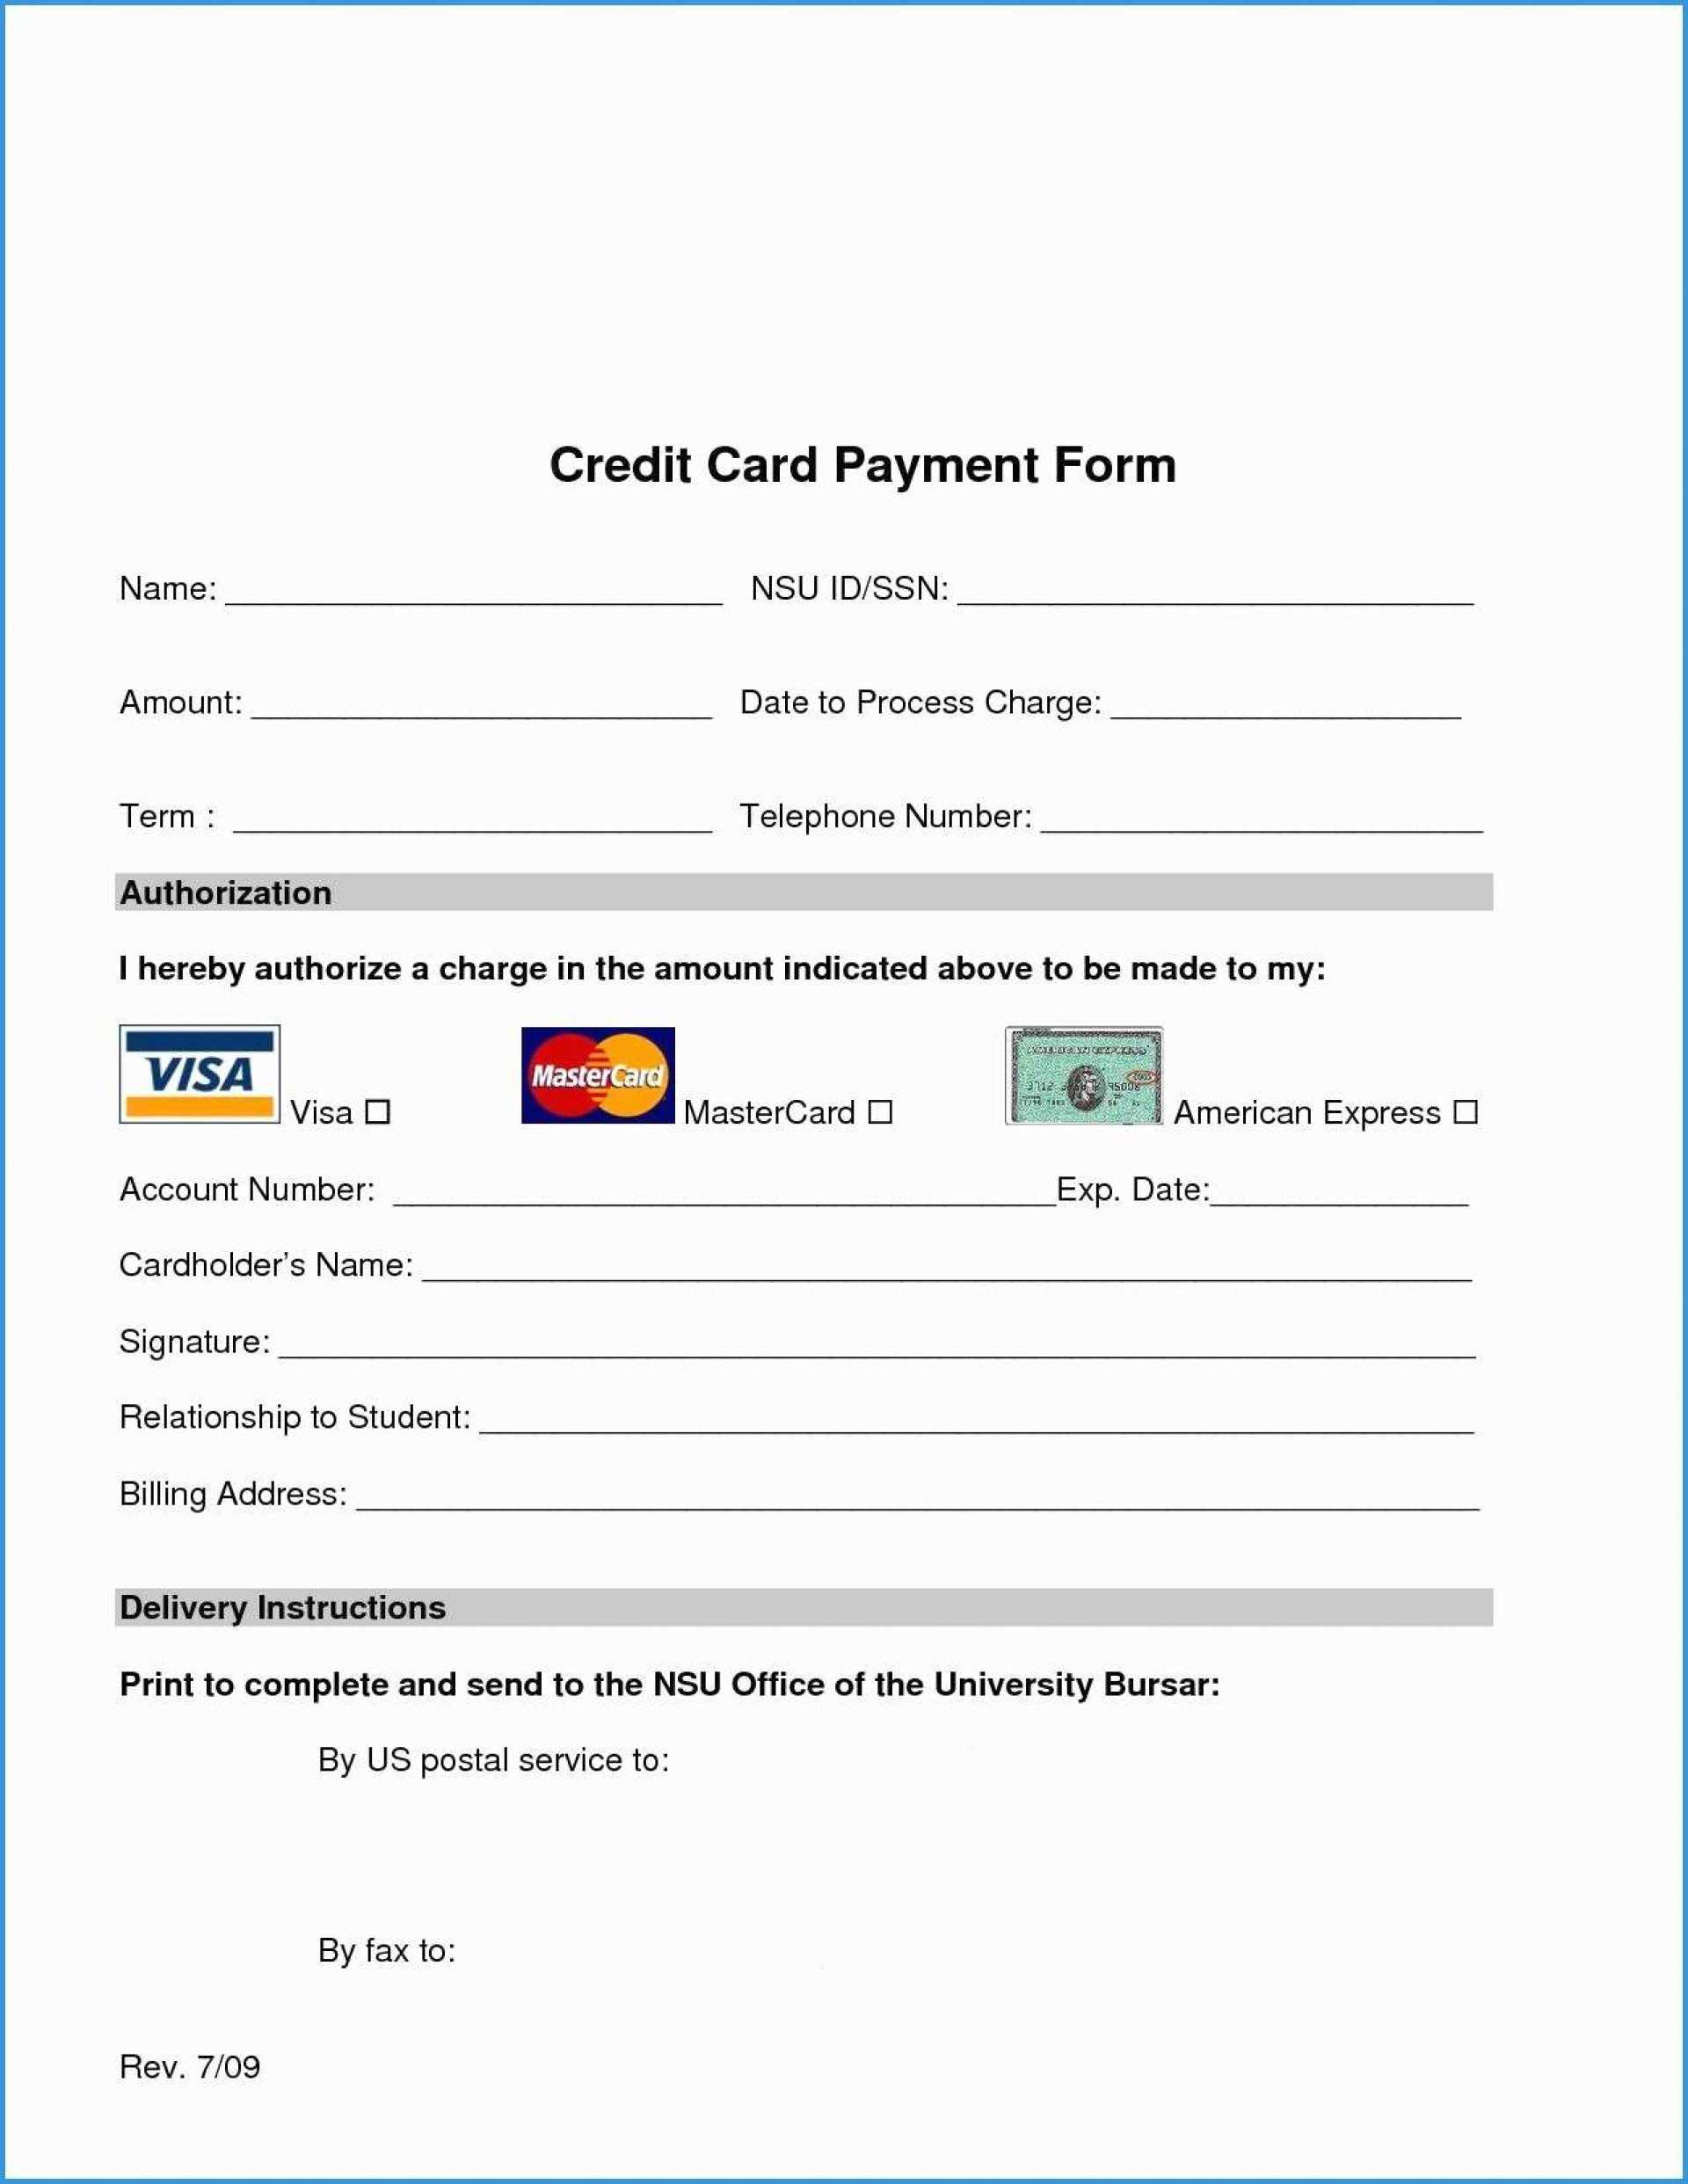 018 Free Credit Card Authorization Form Template Word Luxury With Regard To Credit Card Authorization Form Template Word